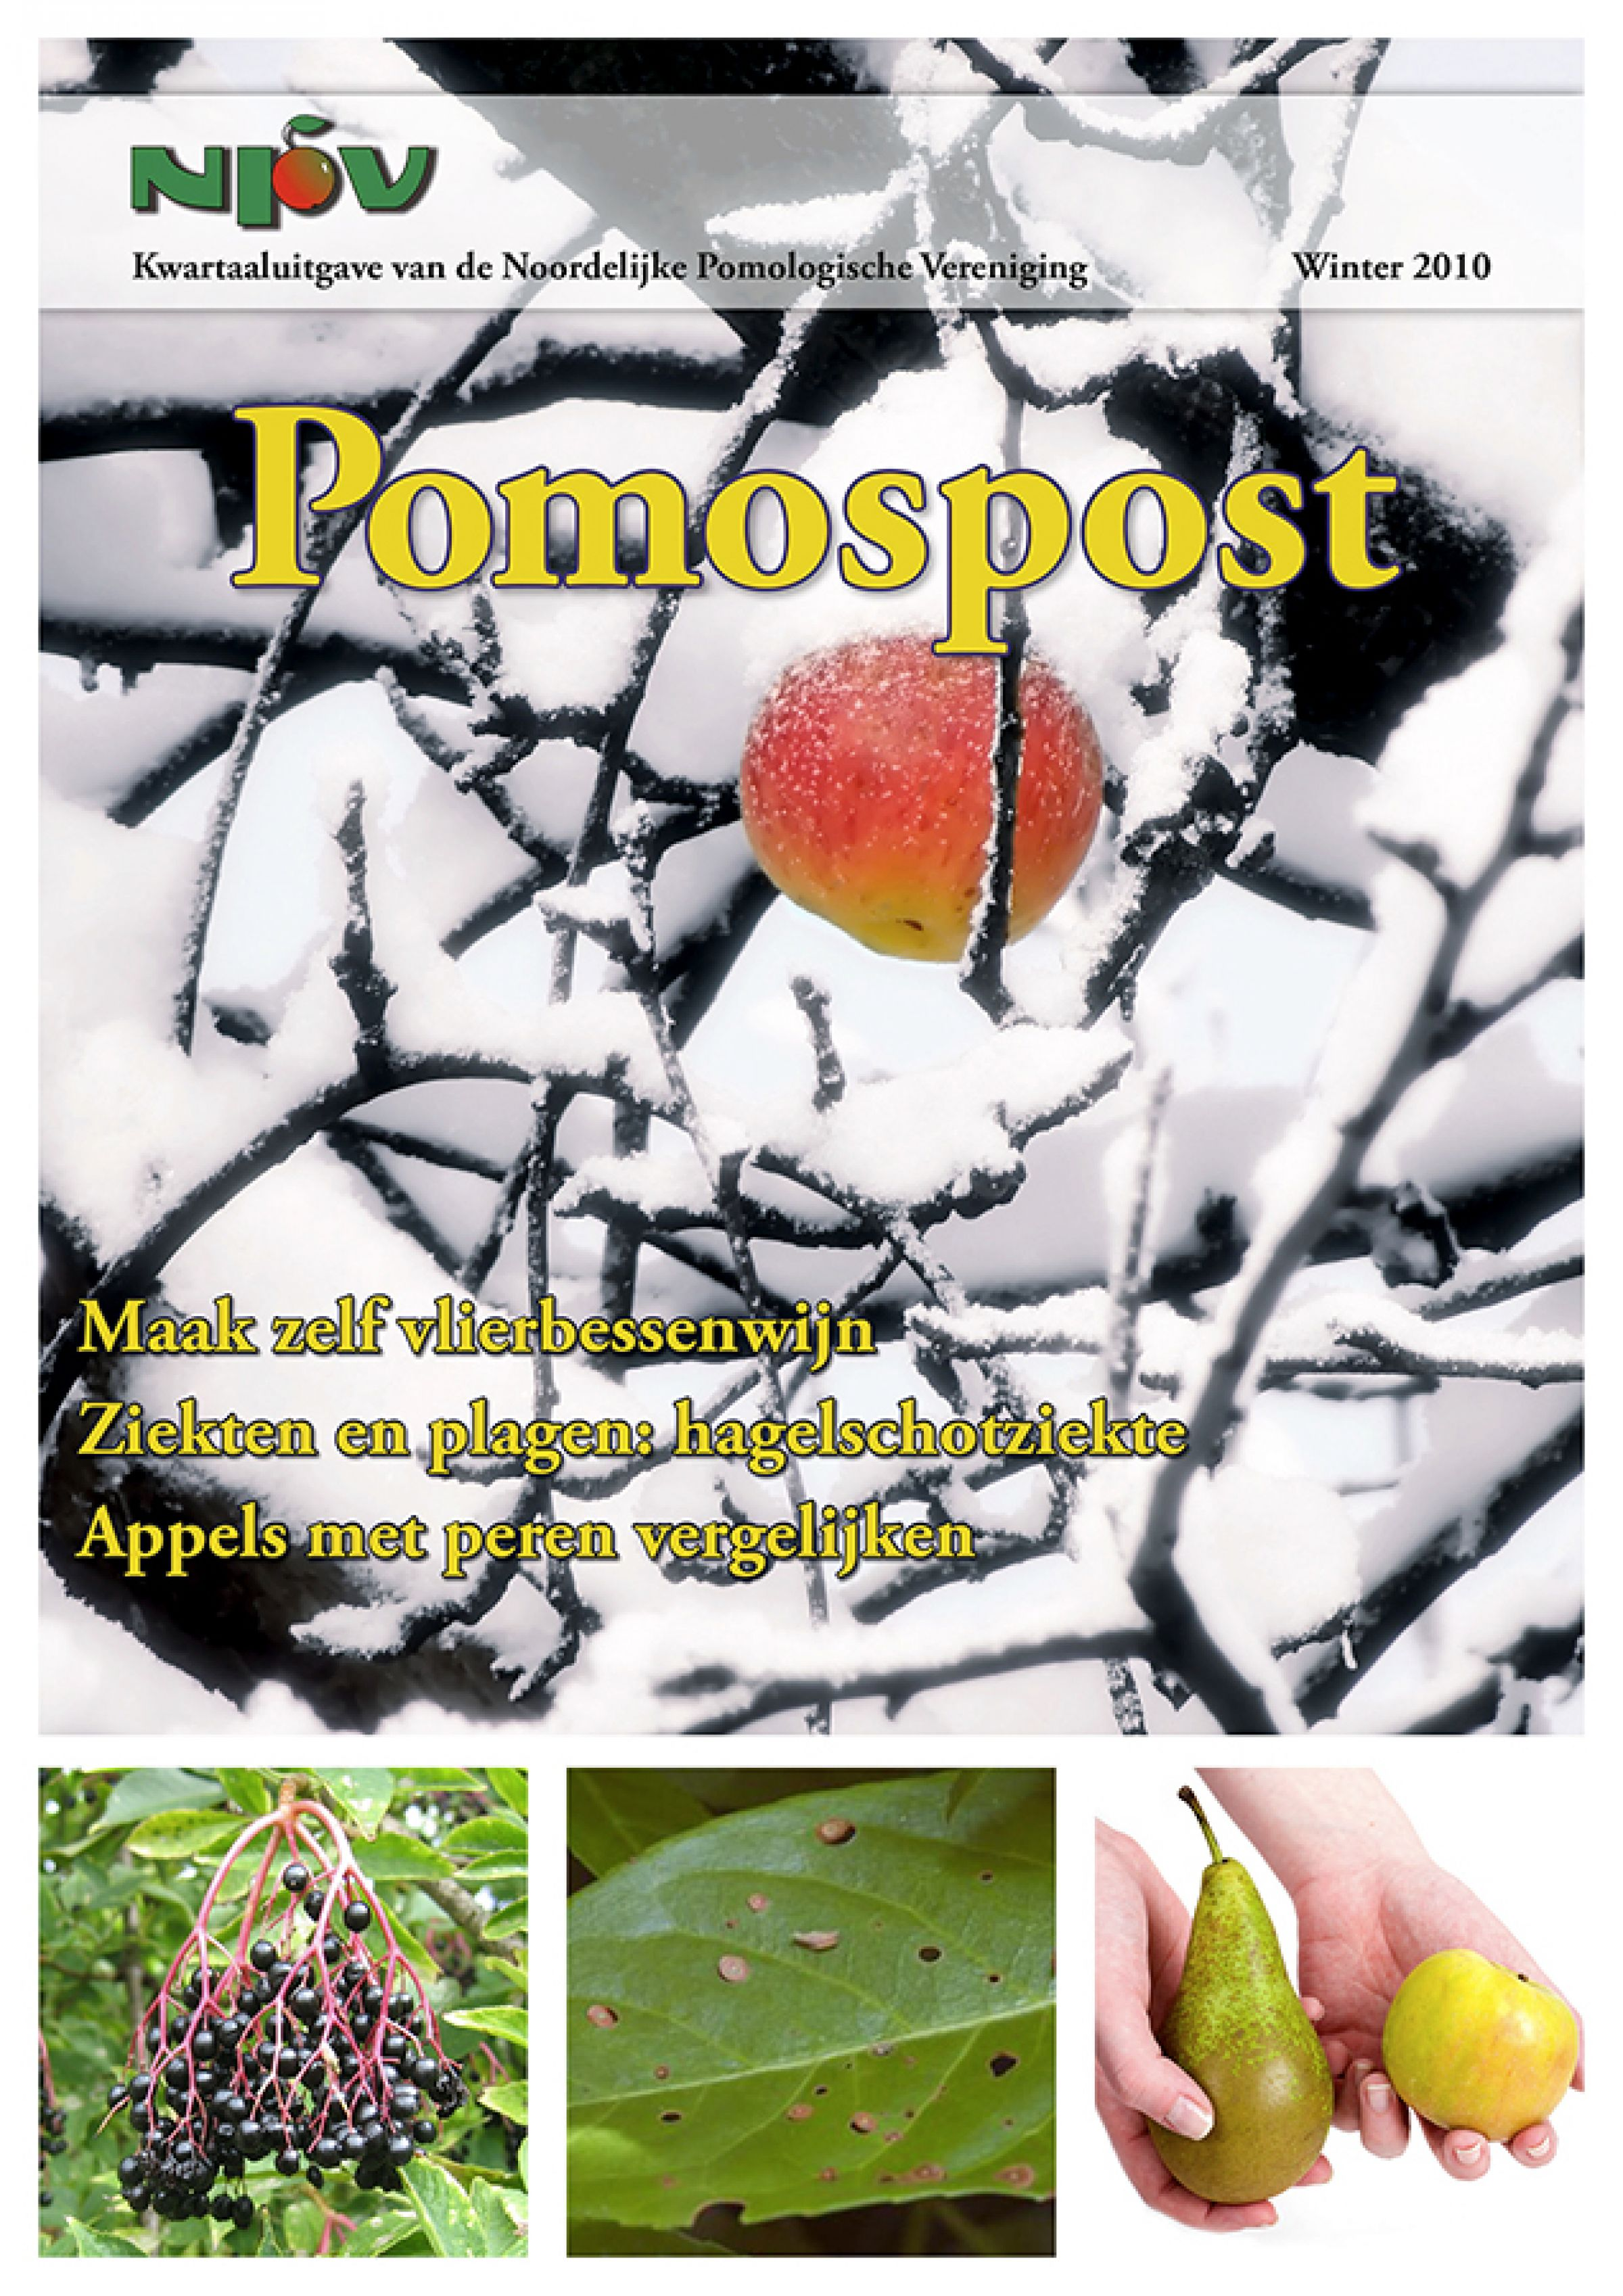 Pomospost 2010 winter 900